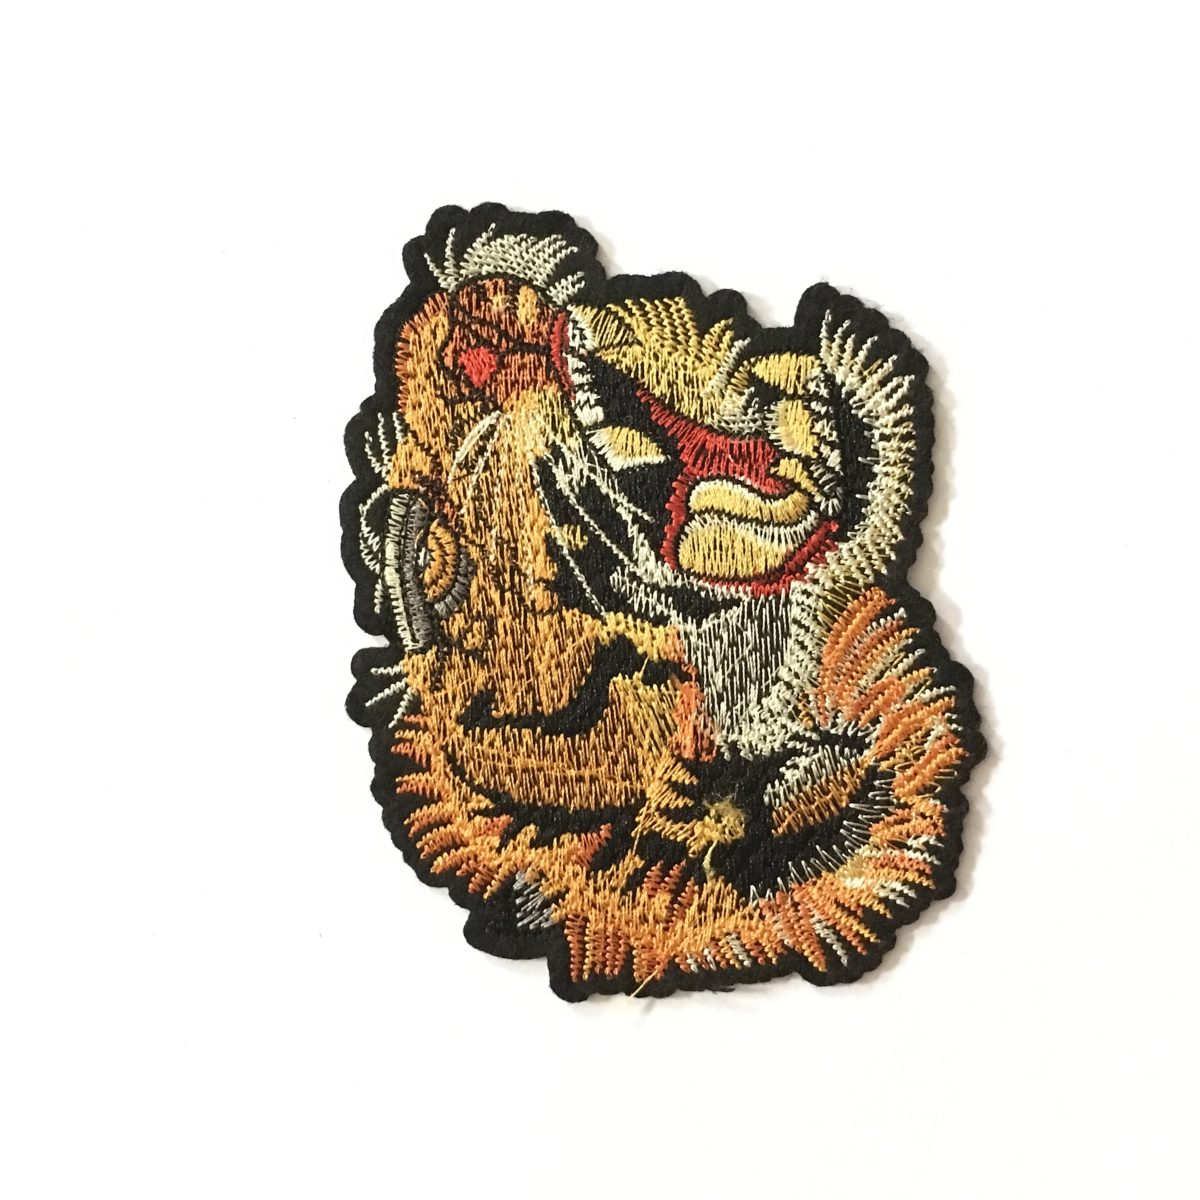 NEW Embroidered Tiger Patch Appliqué, Iron On, Hot Fix, DIY 1